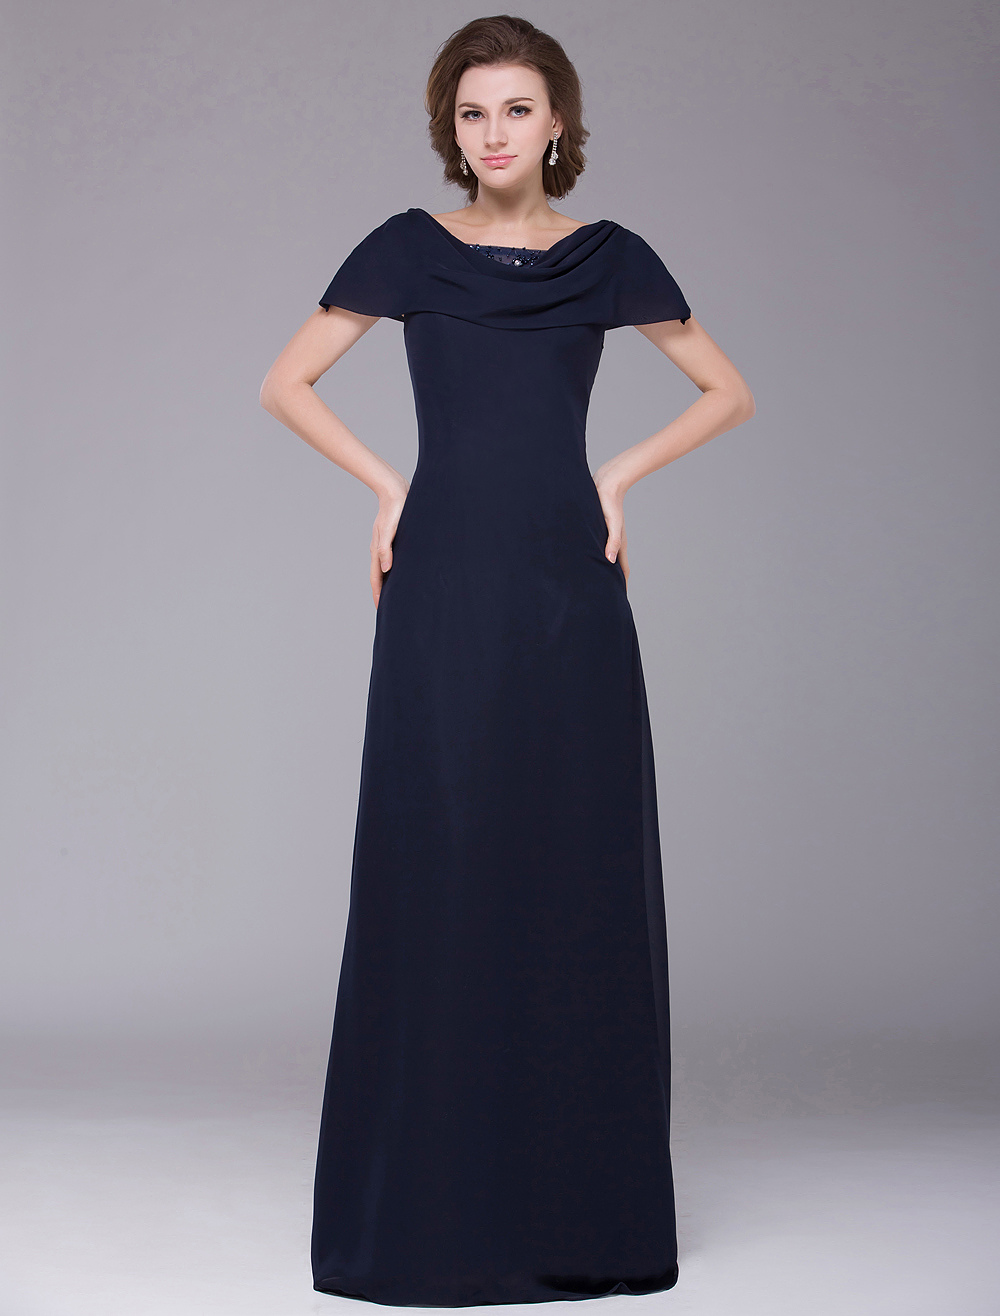 Glamourous Dark Navy A-line Zipper Chiffon Mother of the Bride Dress